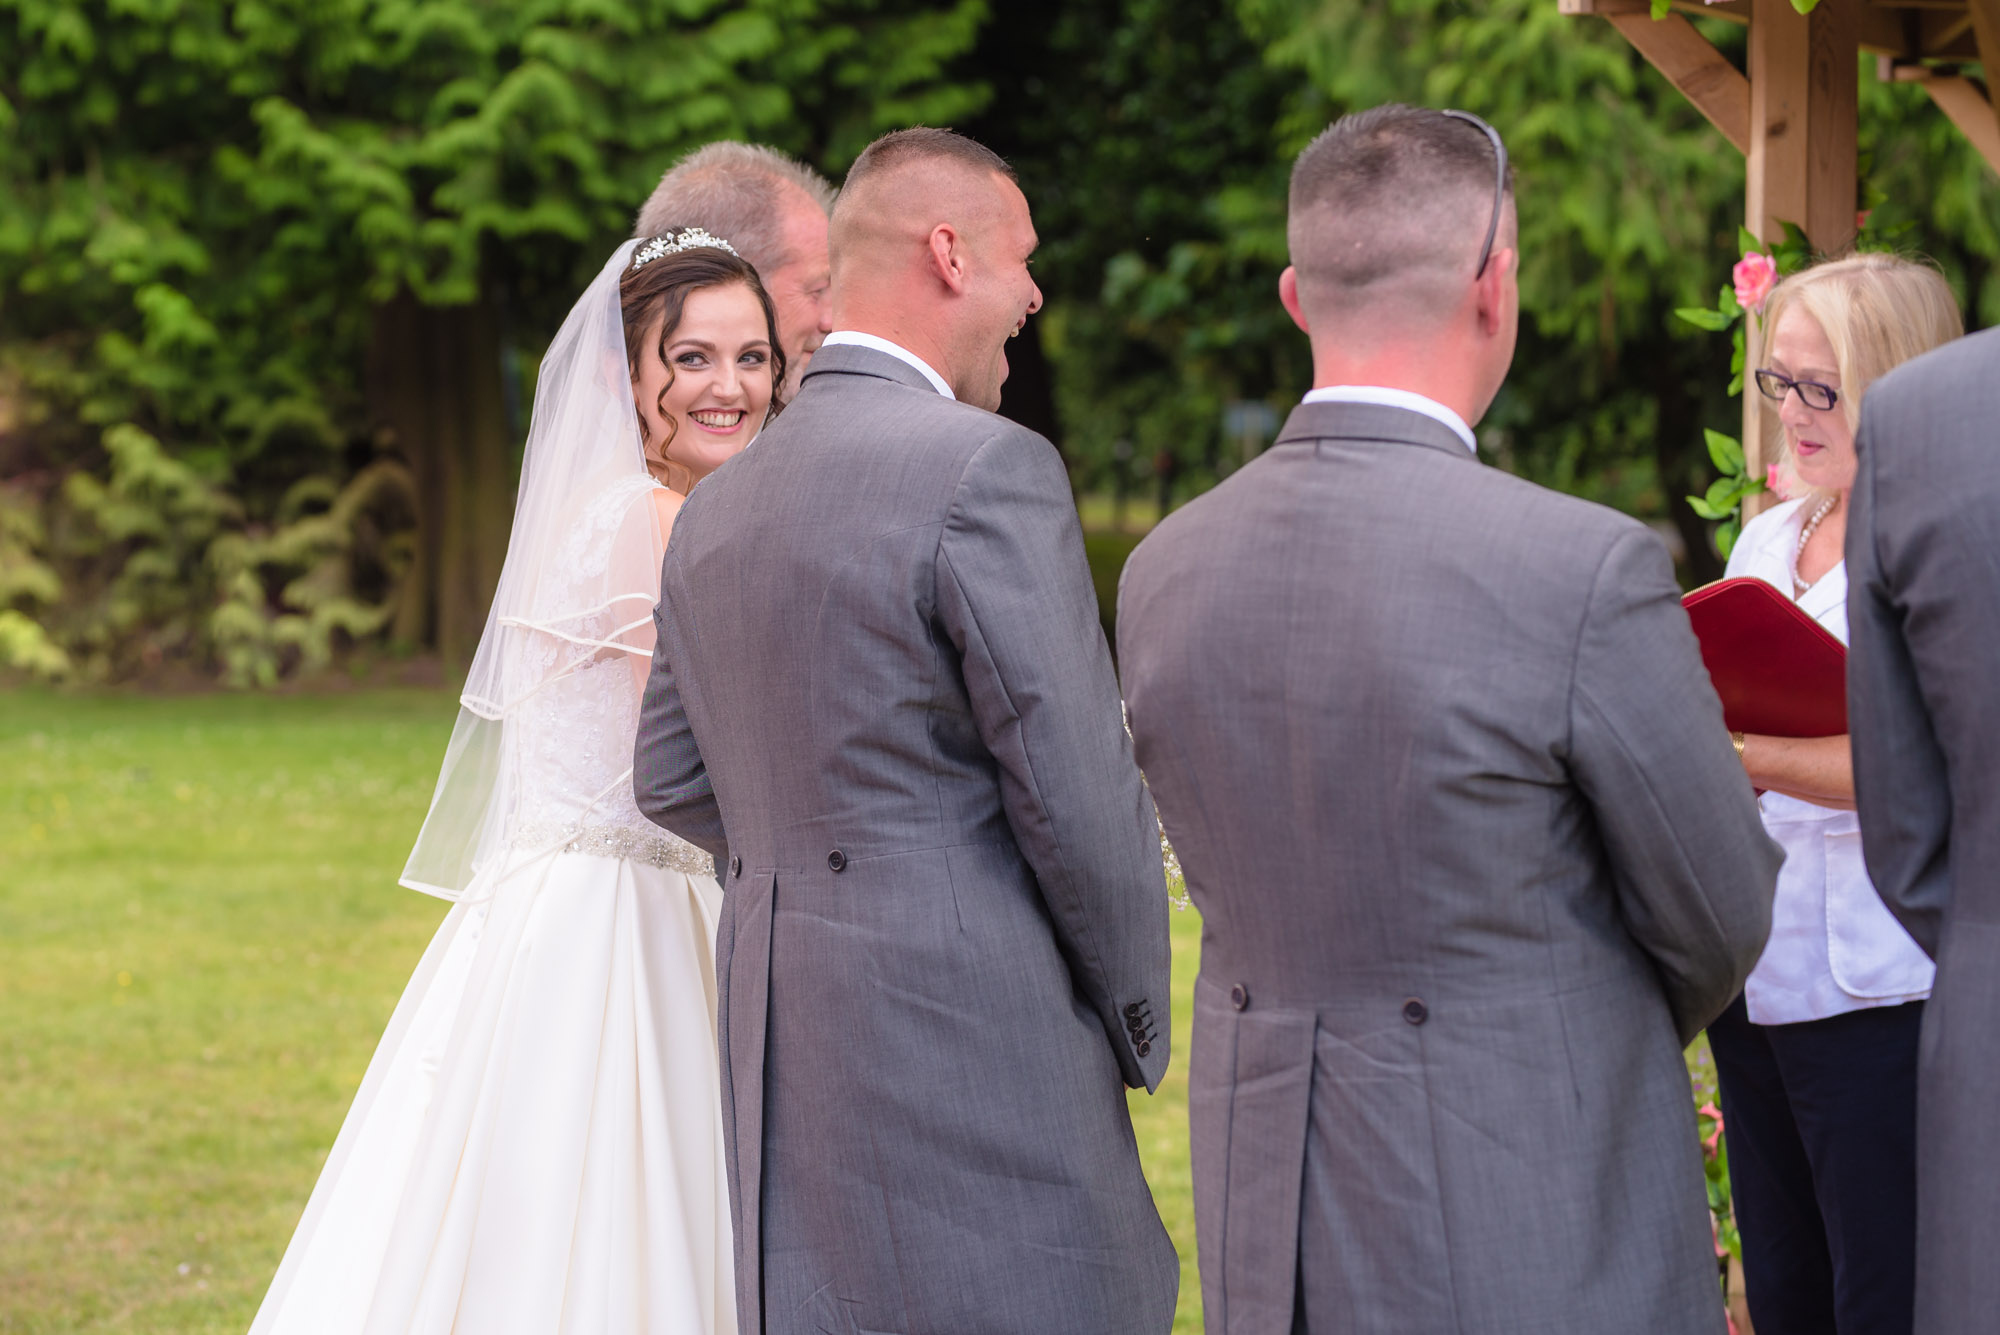 Bride smiles at her guests